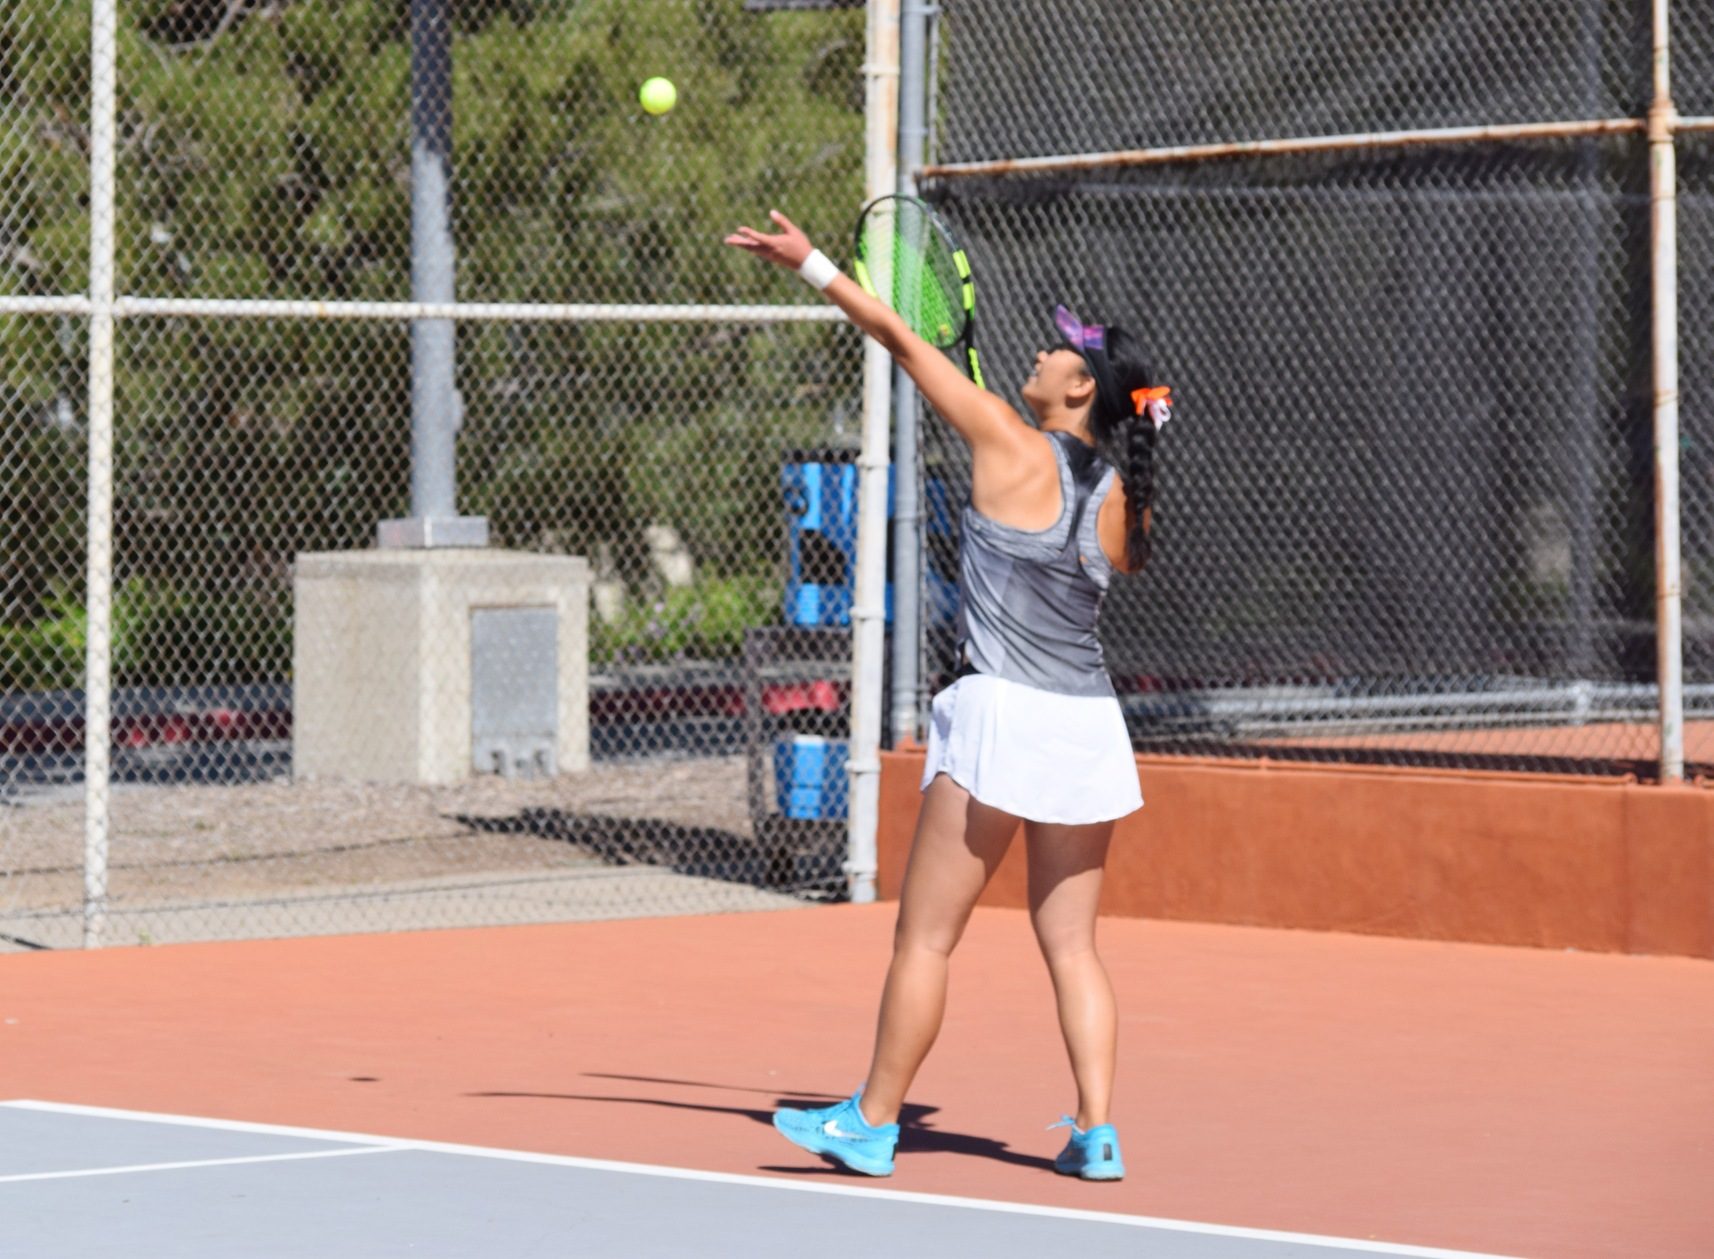 Moriyama, Liu Nearly Complete Doubles Comeback in SCIAC Semi's